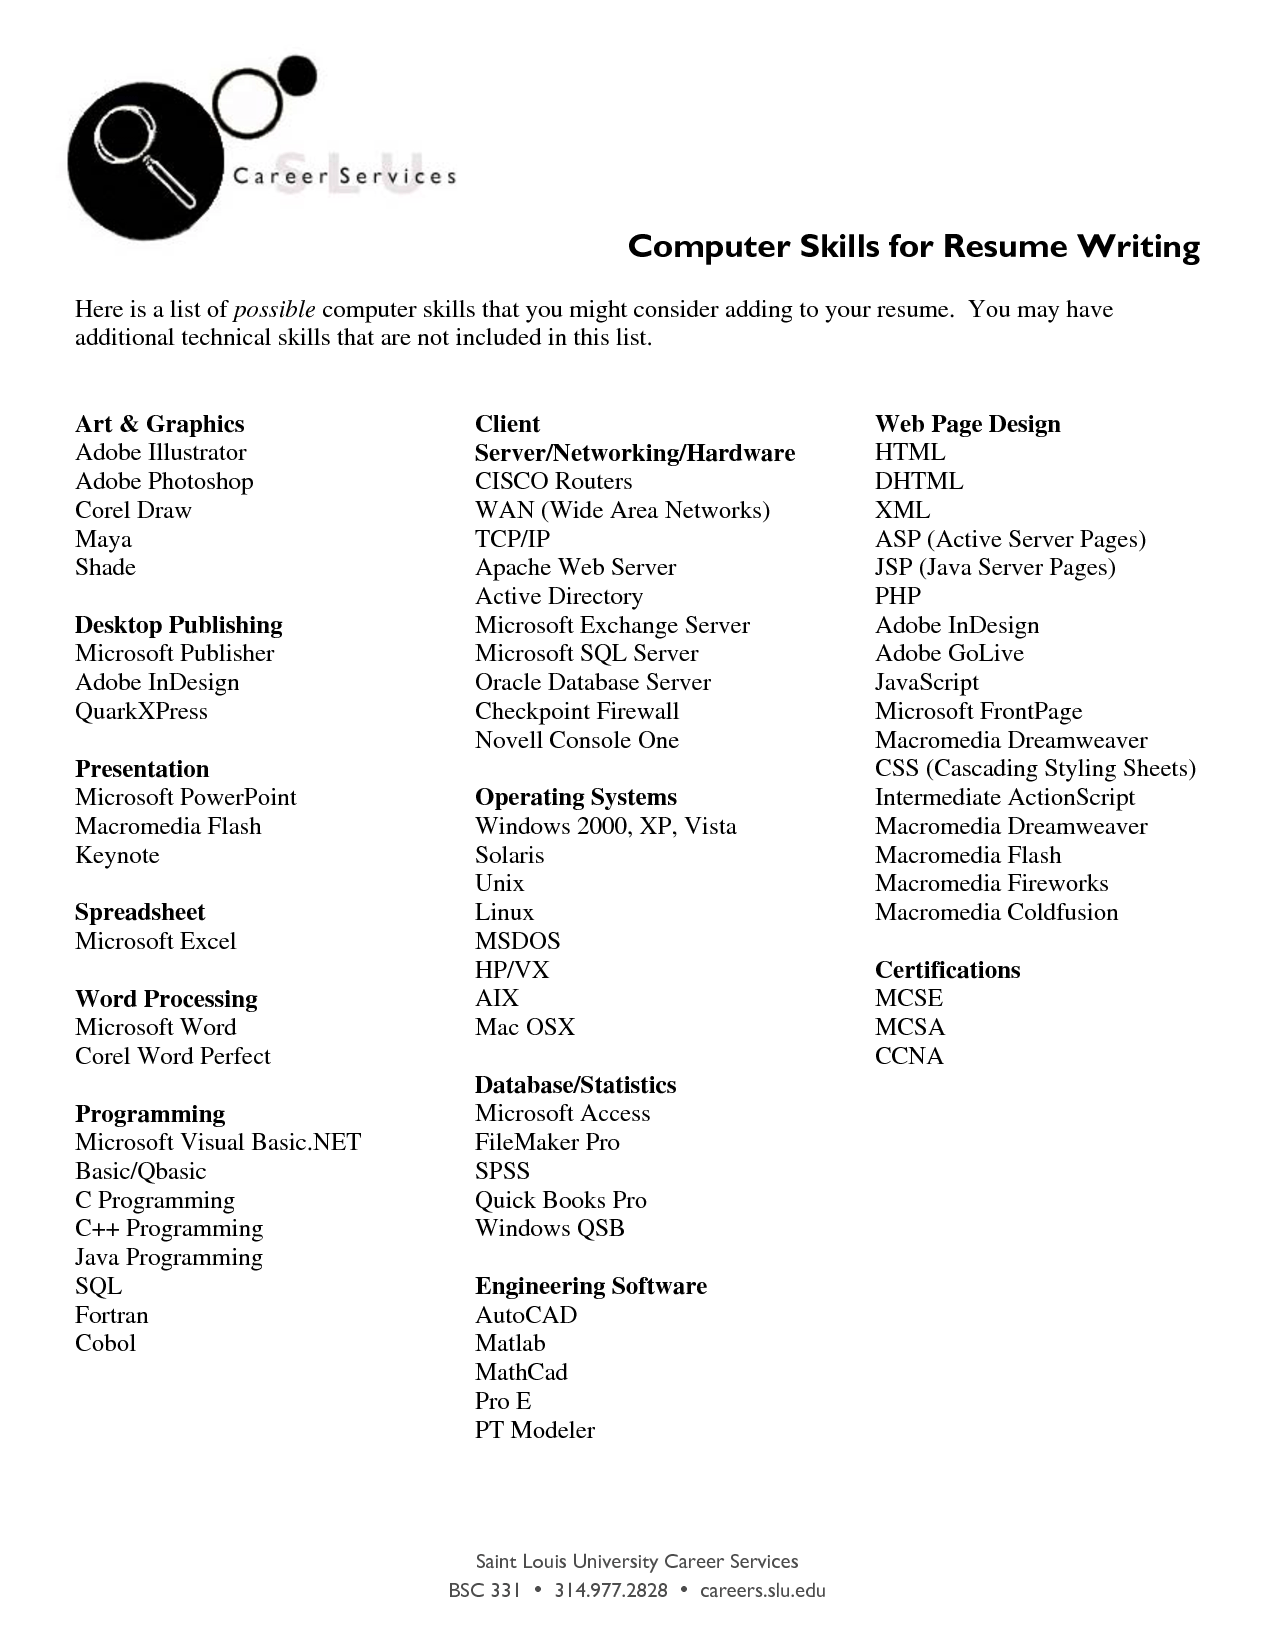 Computer skills list job application